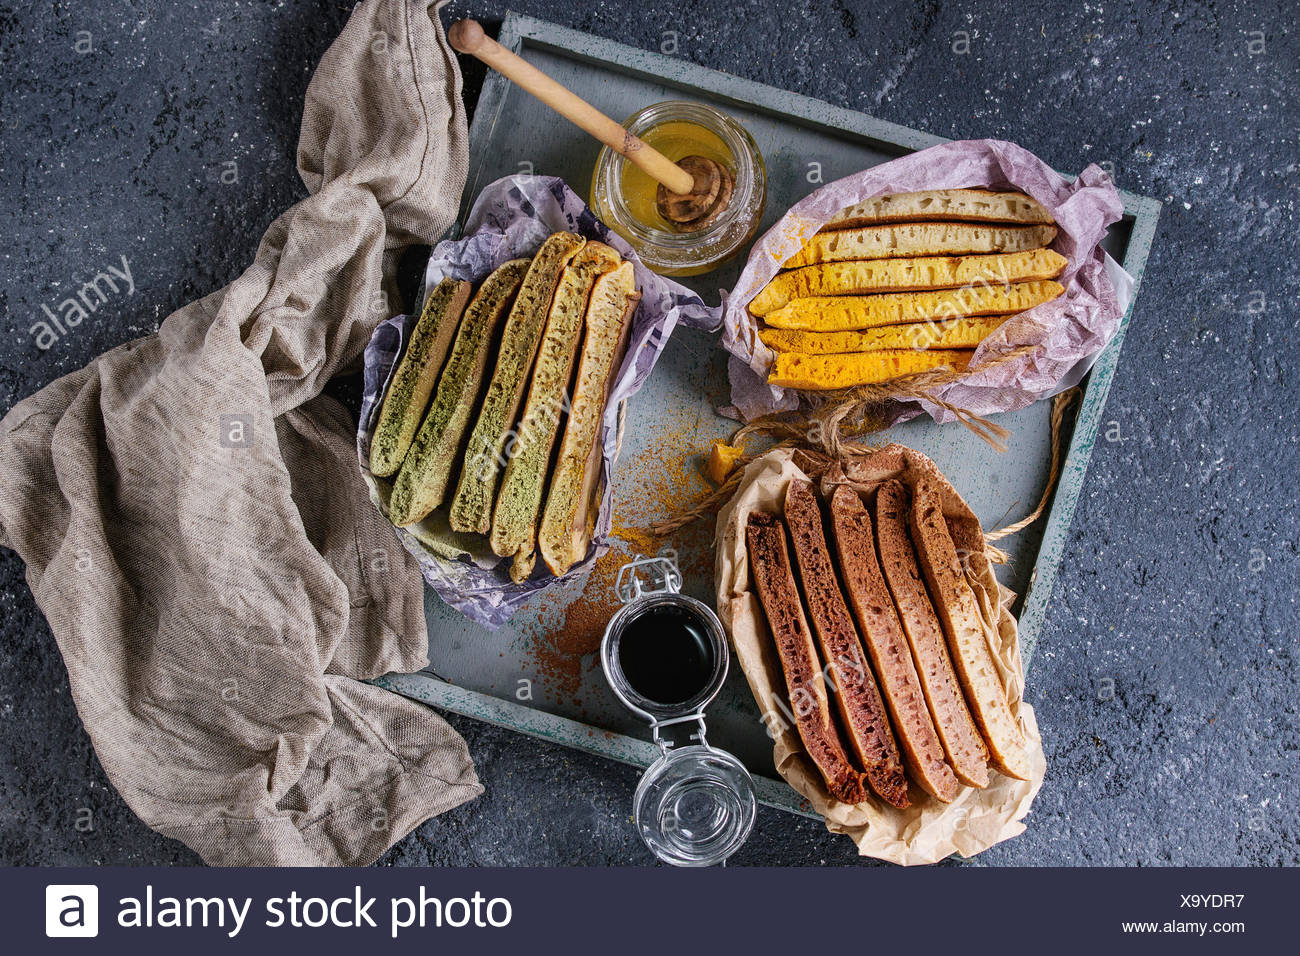 Variety of sliced american ombre chocolate, green tea matcha and turmeric pancakes served in paper paper wrapper with honey sauces on wood tray over b - Stock Image